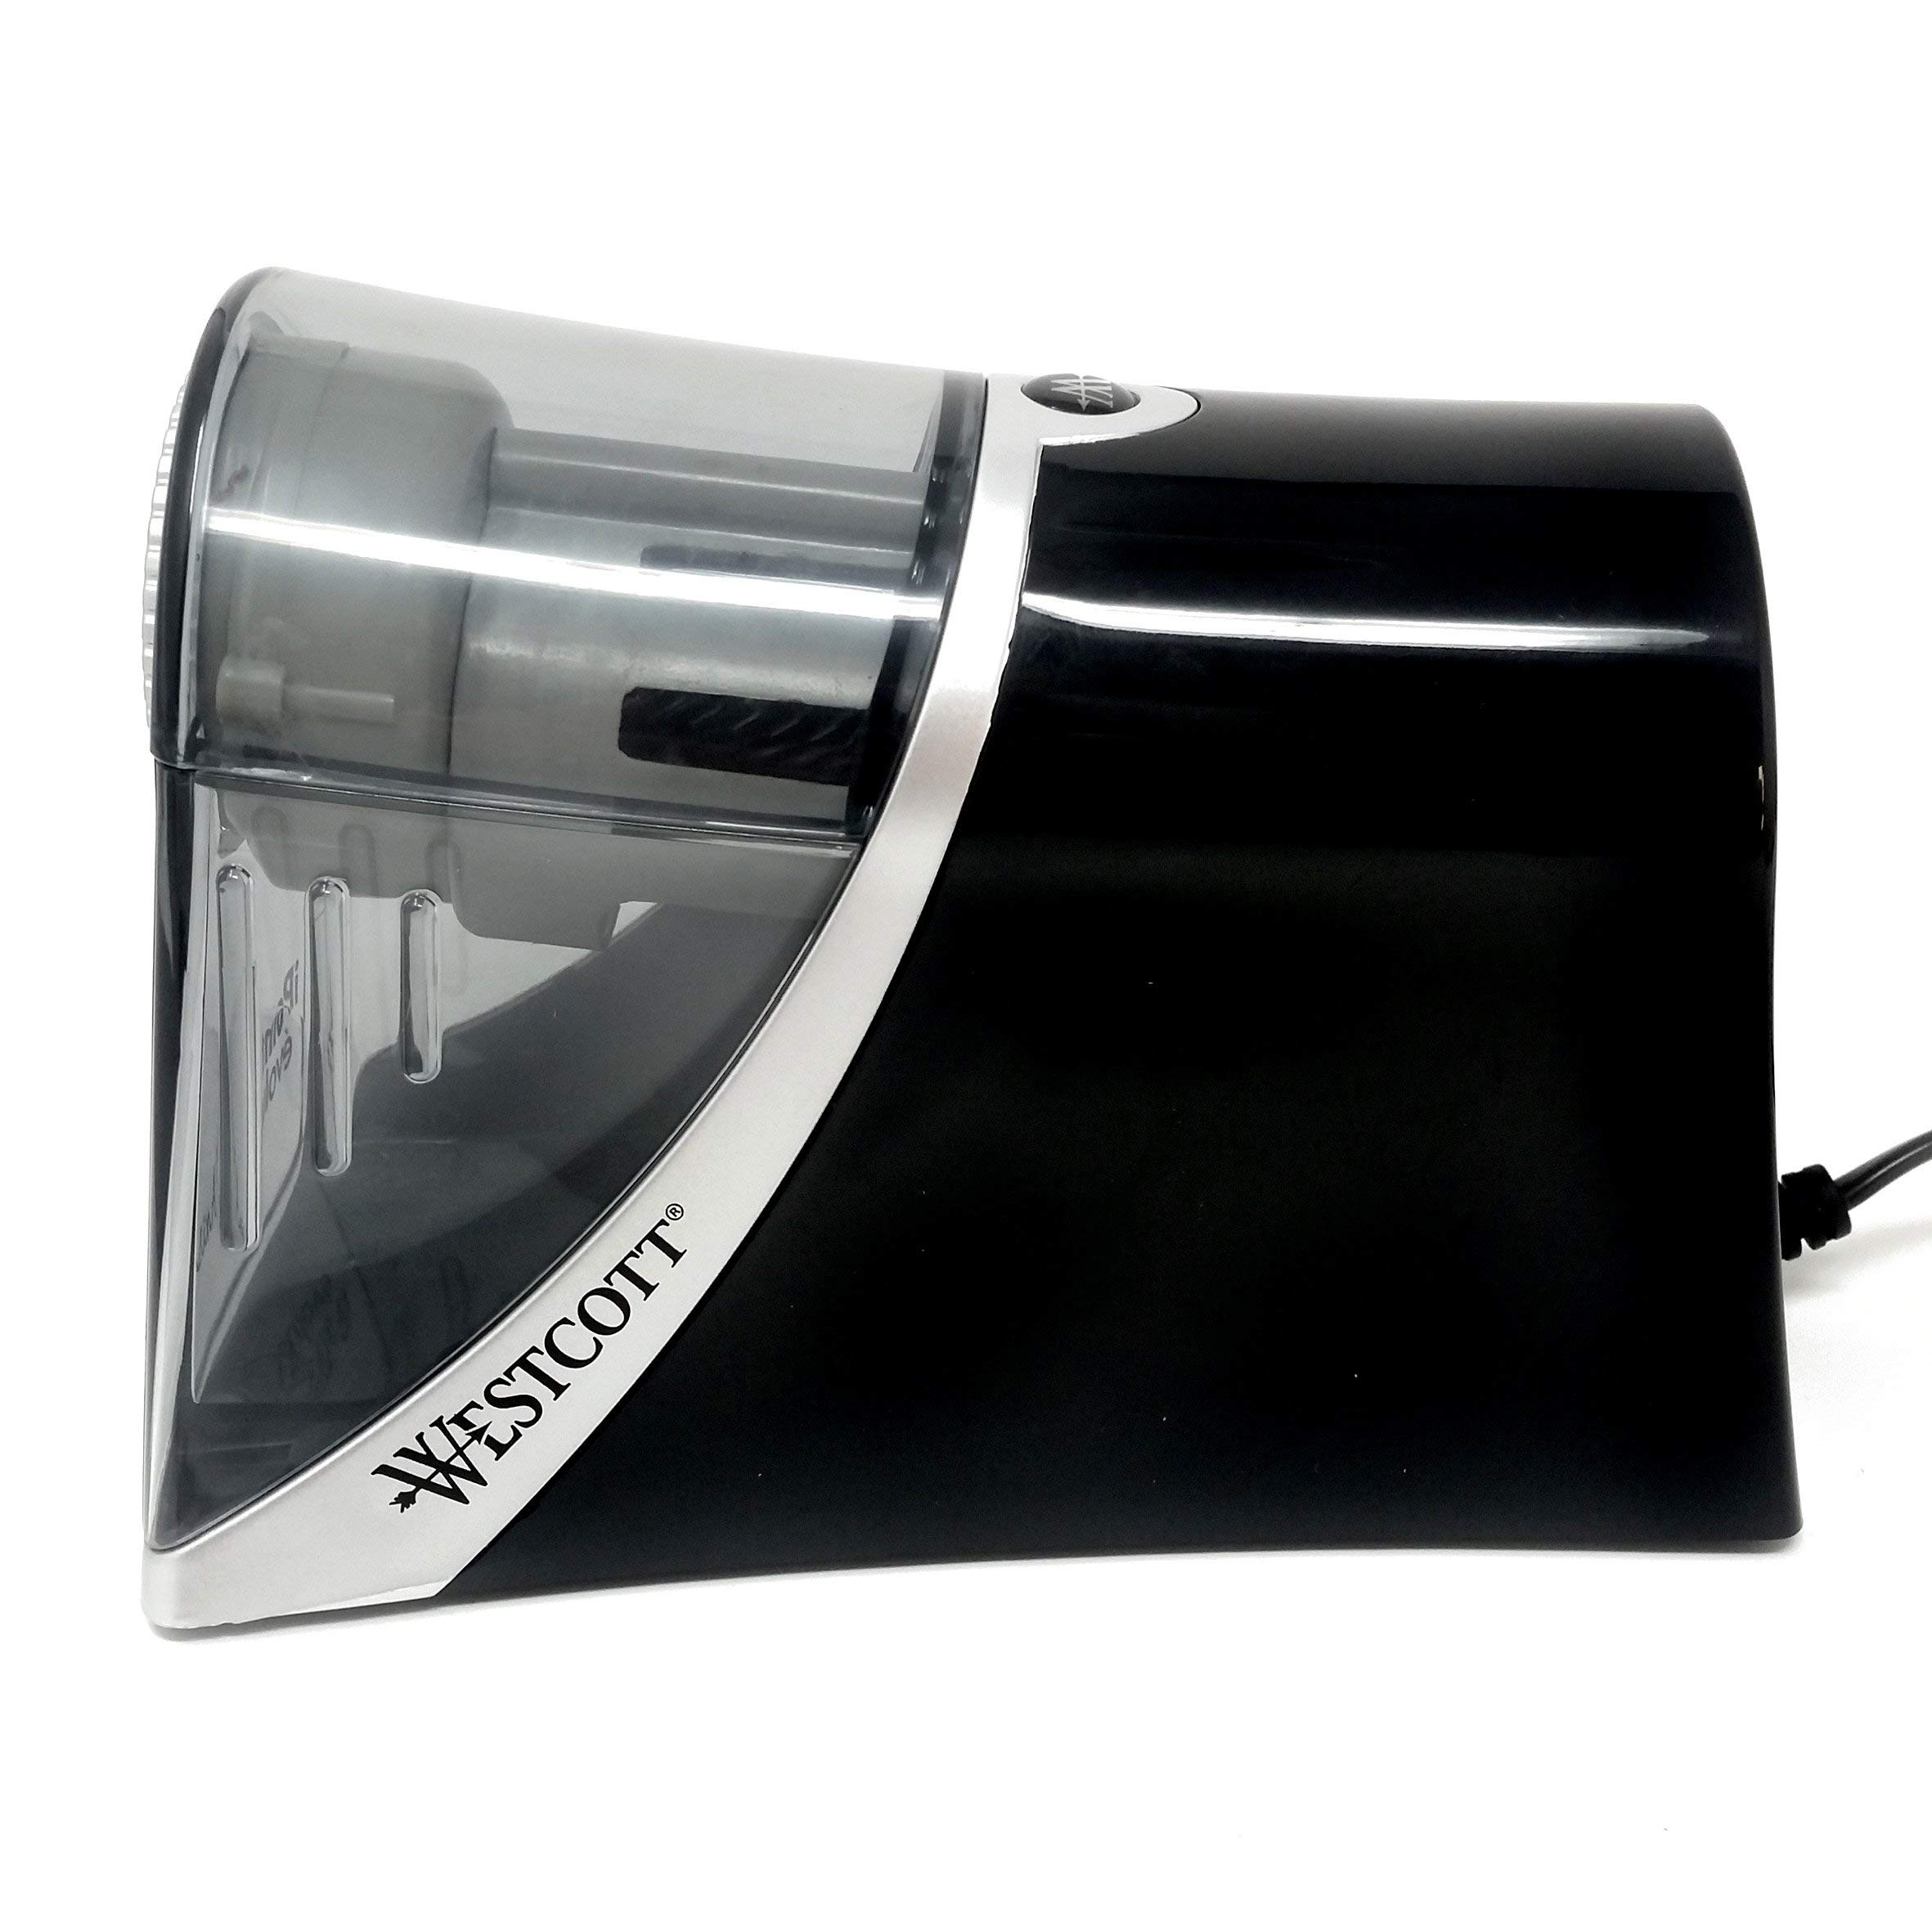 Westcott - iPoint évolution Axis - Auto-Stop Electric Desktop Pencil Sharpener with UK Plug - Carbon Steel Blades by Westcott (Image #2)